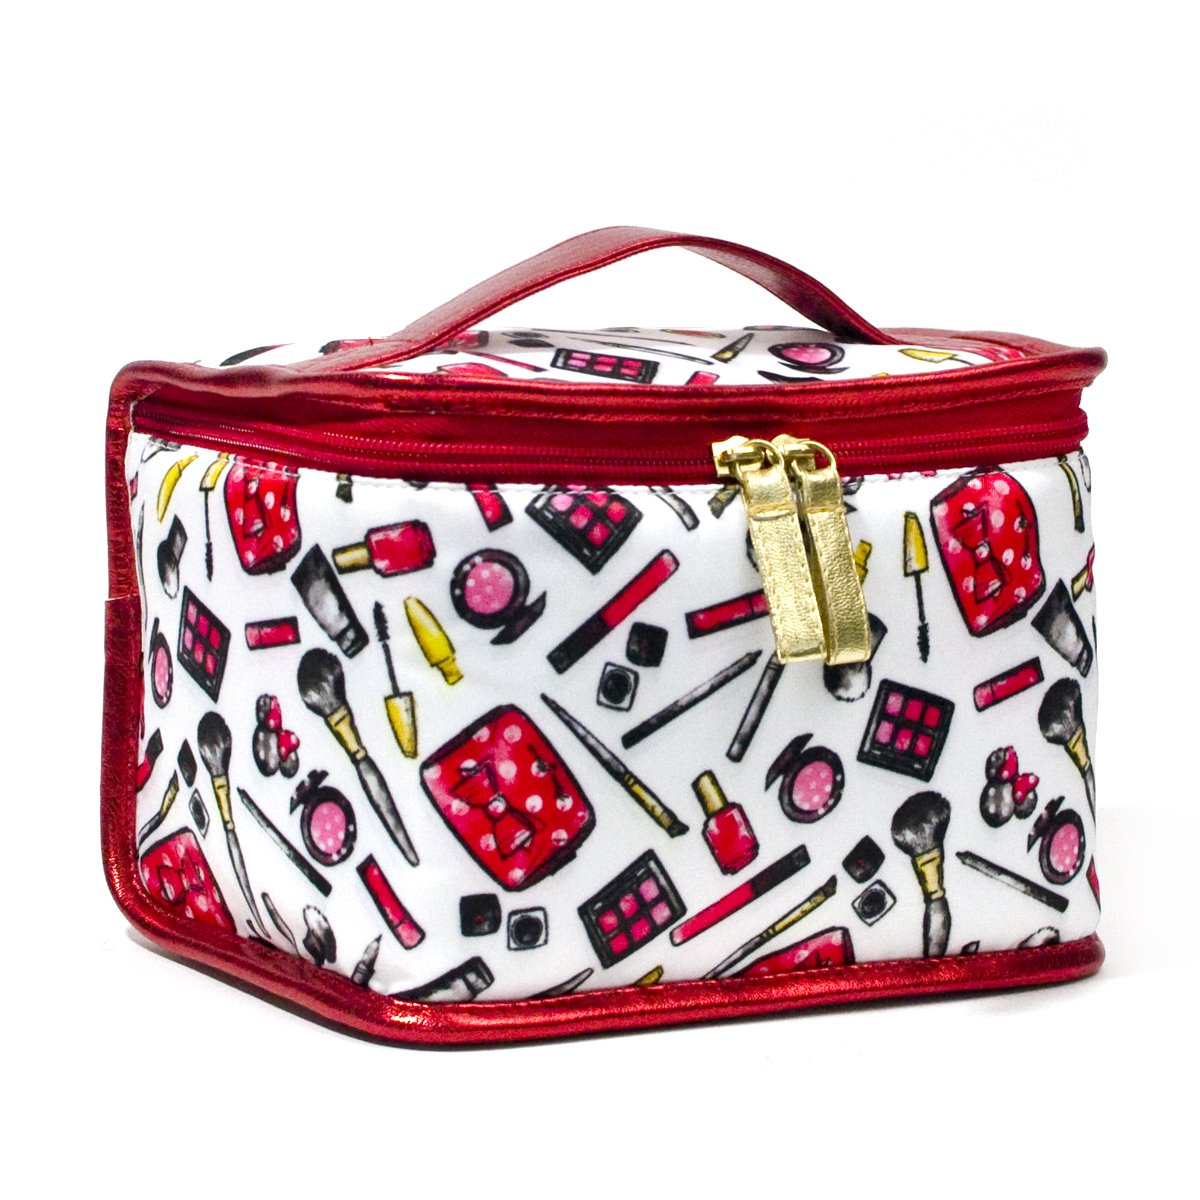 LONDON SOHO NEW YORK Disney Collection Minnie Mouse Cosmetic Train Case, Minnie's Makeup